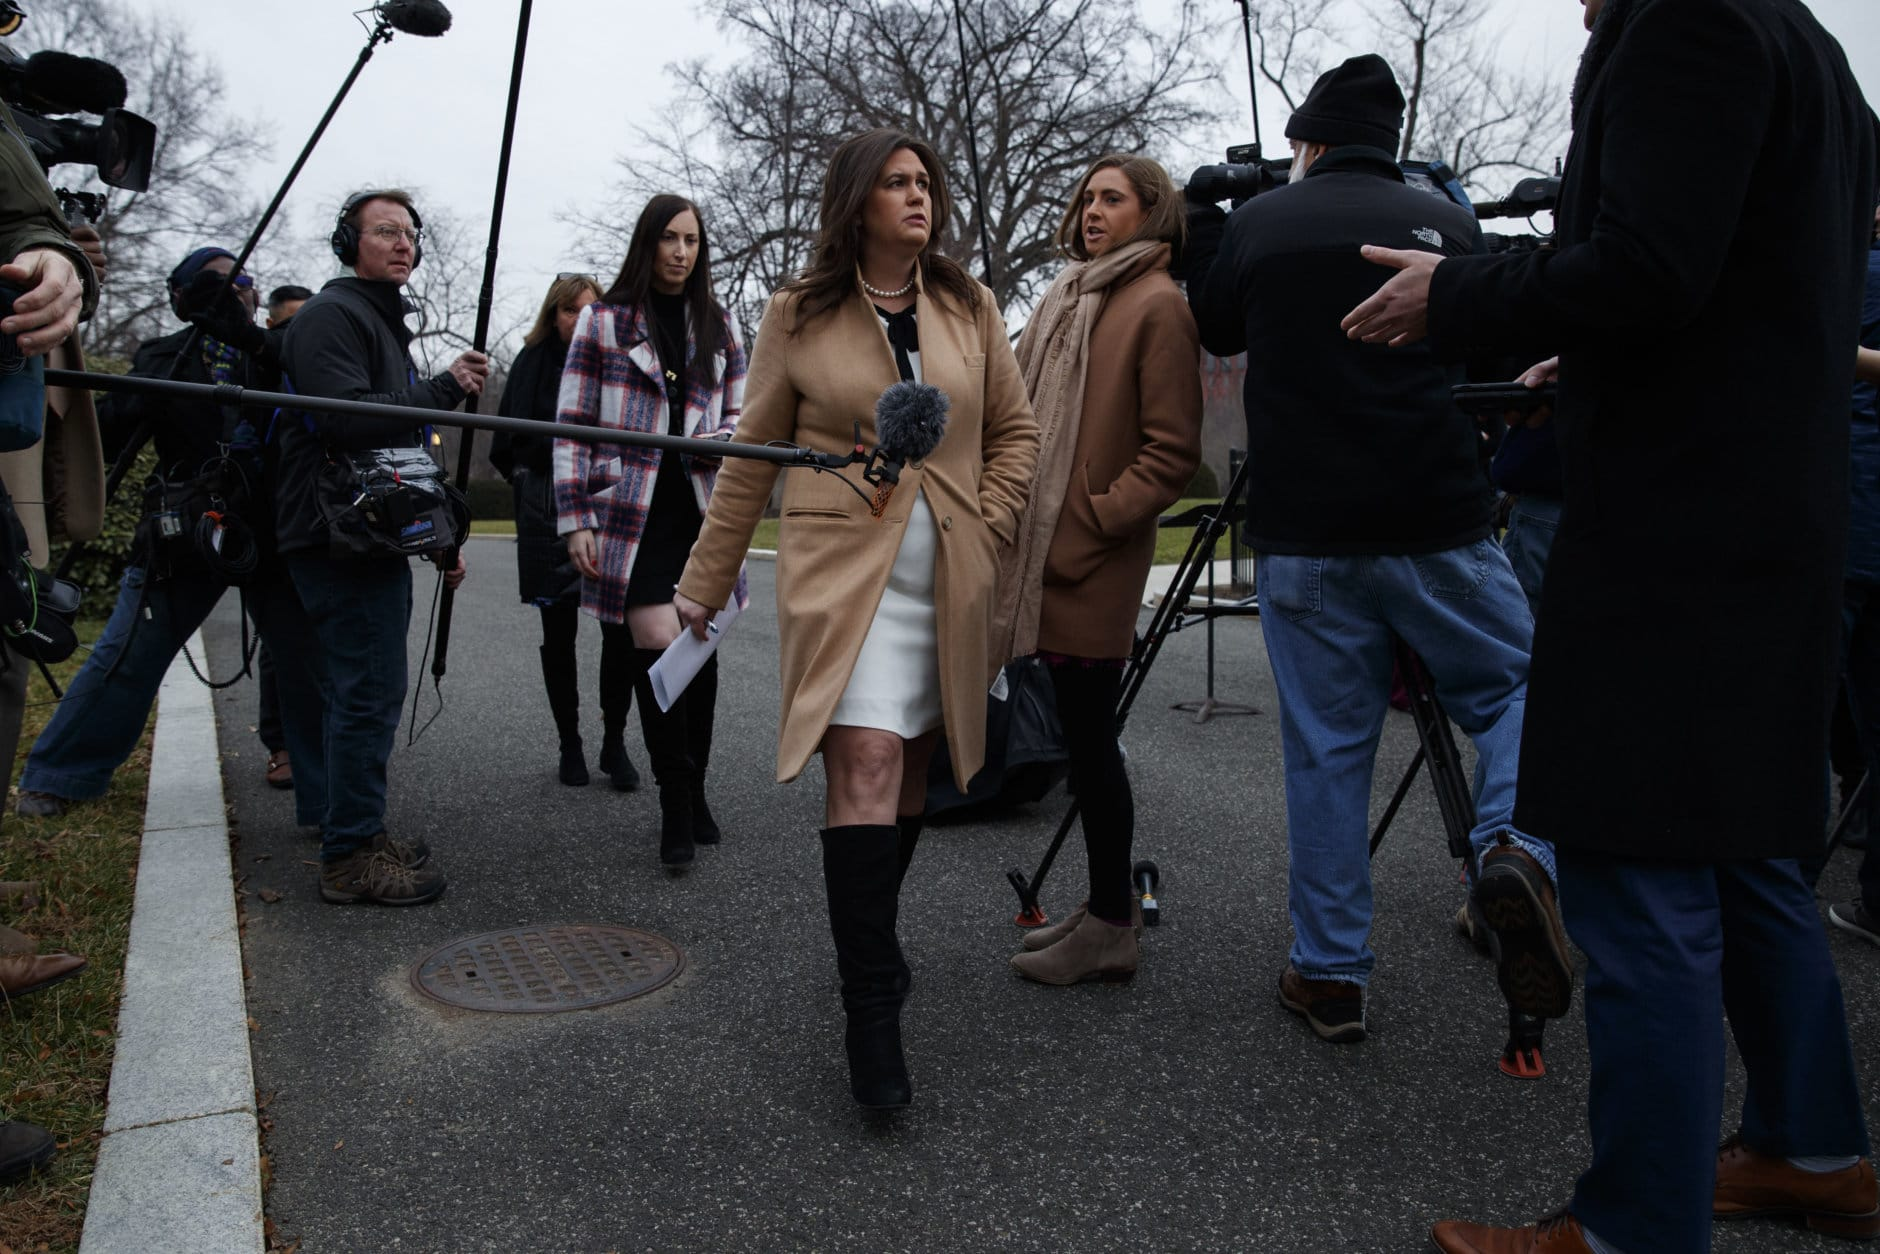 White House press secretary Sarah Huckabee Sanders walks off after speaking with reporters about the government shutdown outside the White House, Friday, Jan. 4, 2019, in Washington. (AP Photo/Evan Vucci)